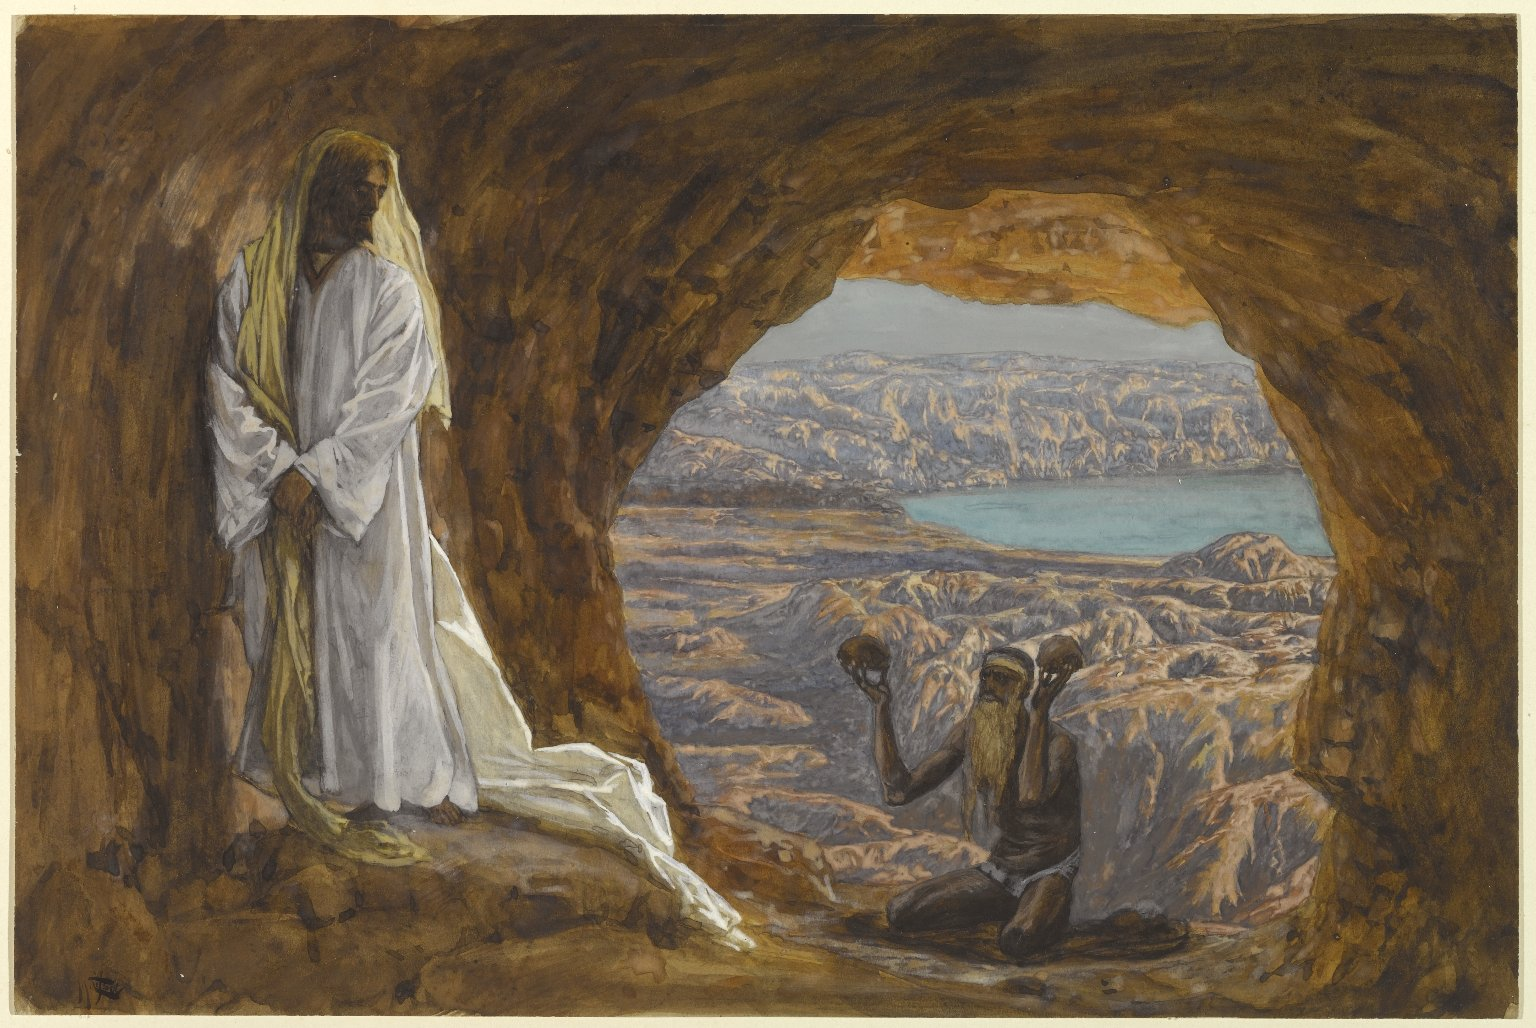 Jesus Tempted in the Wilderness, James Tissot, Brooklyn Museum